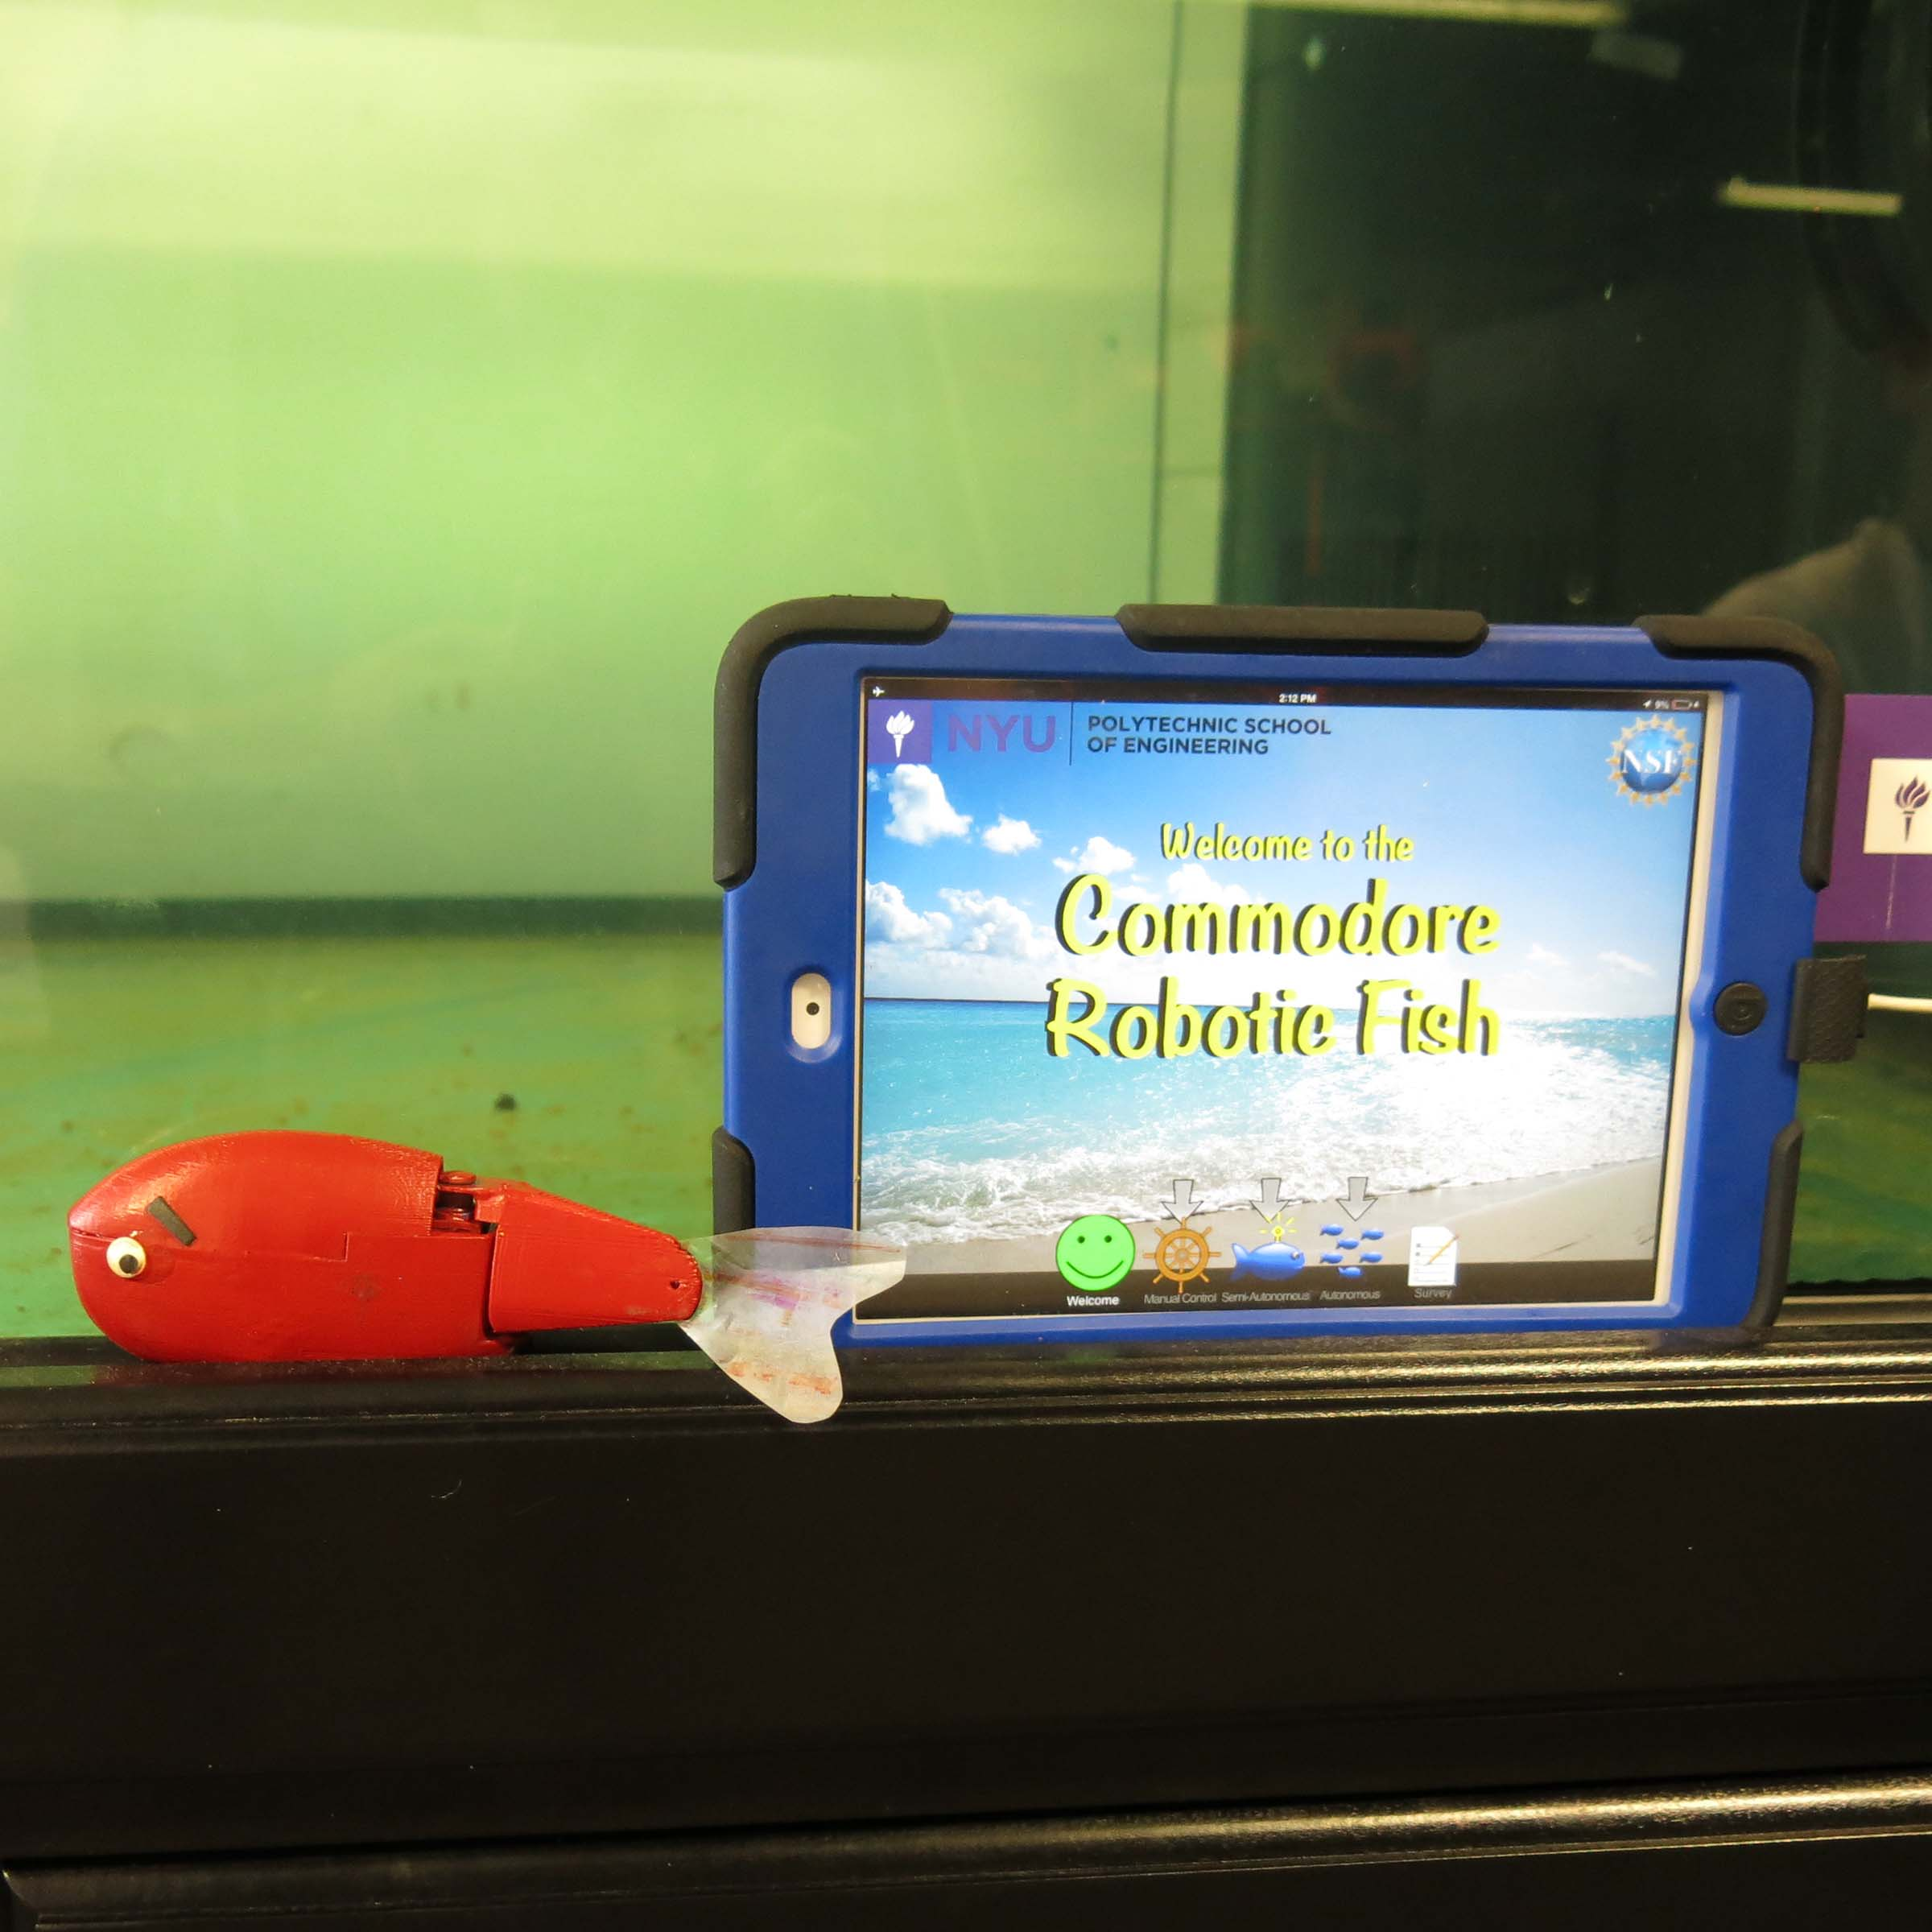 An ipad with NYU's logo stating students are about to watch a video on Commodore Robotic Fish